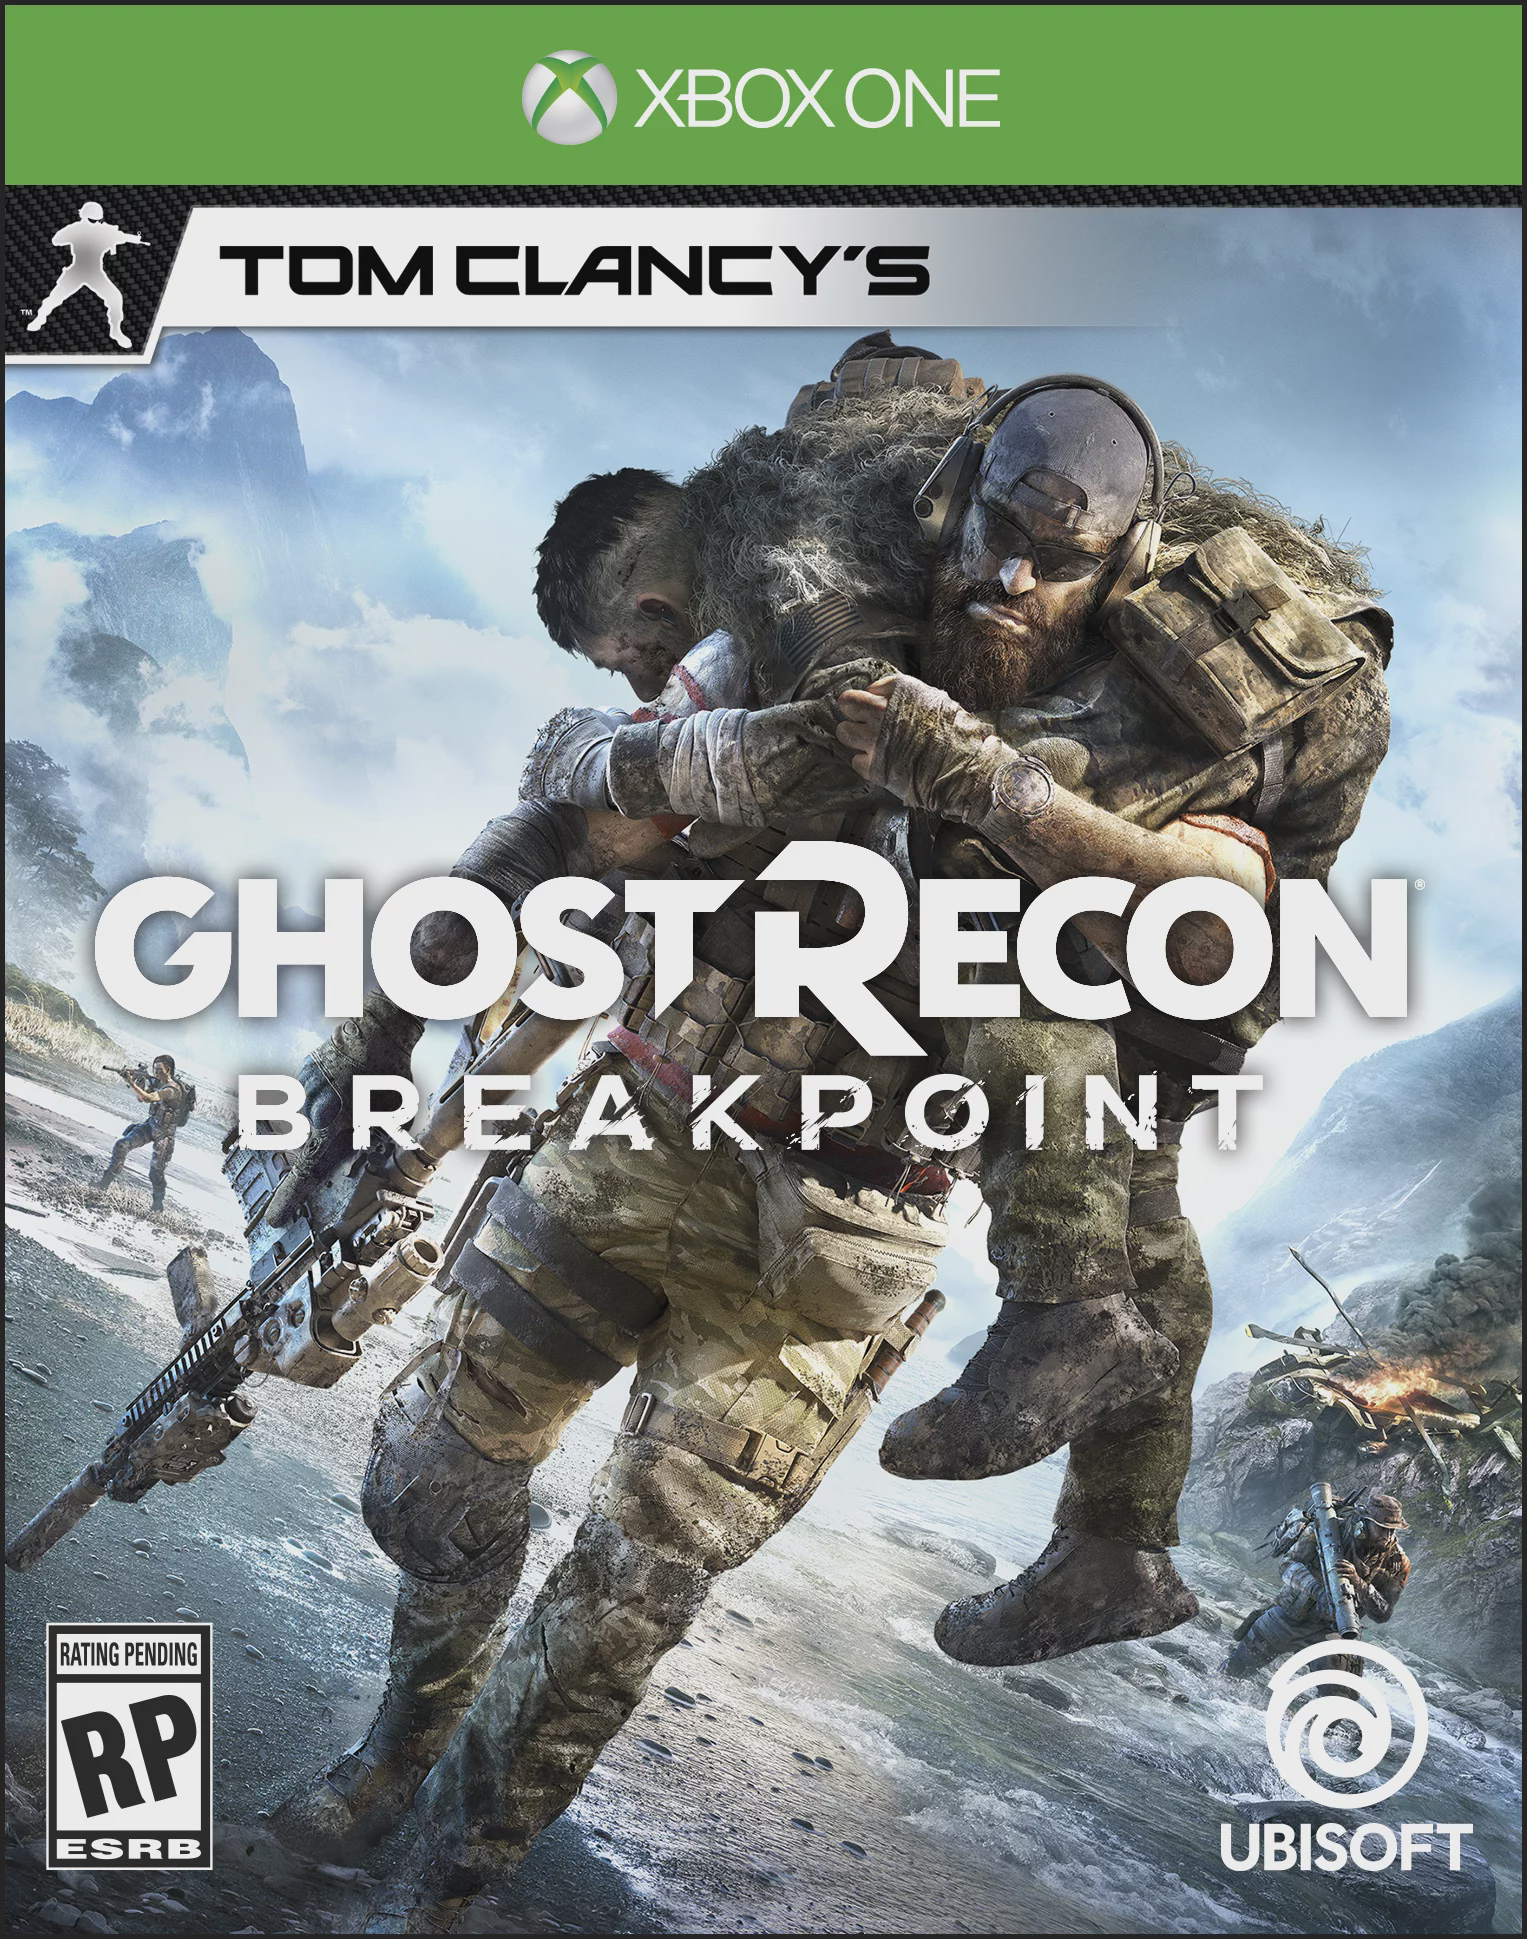 DAY 2 Tom Clancy's Ghost Recon Breakpoint, Xbox One, 887256090531